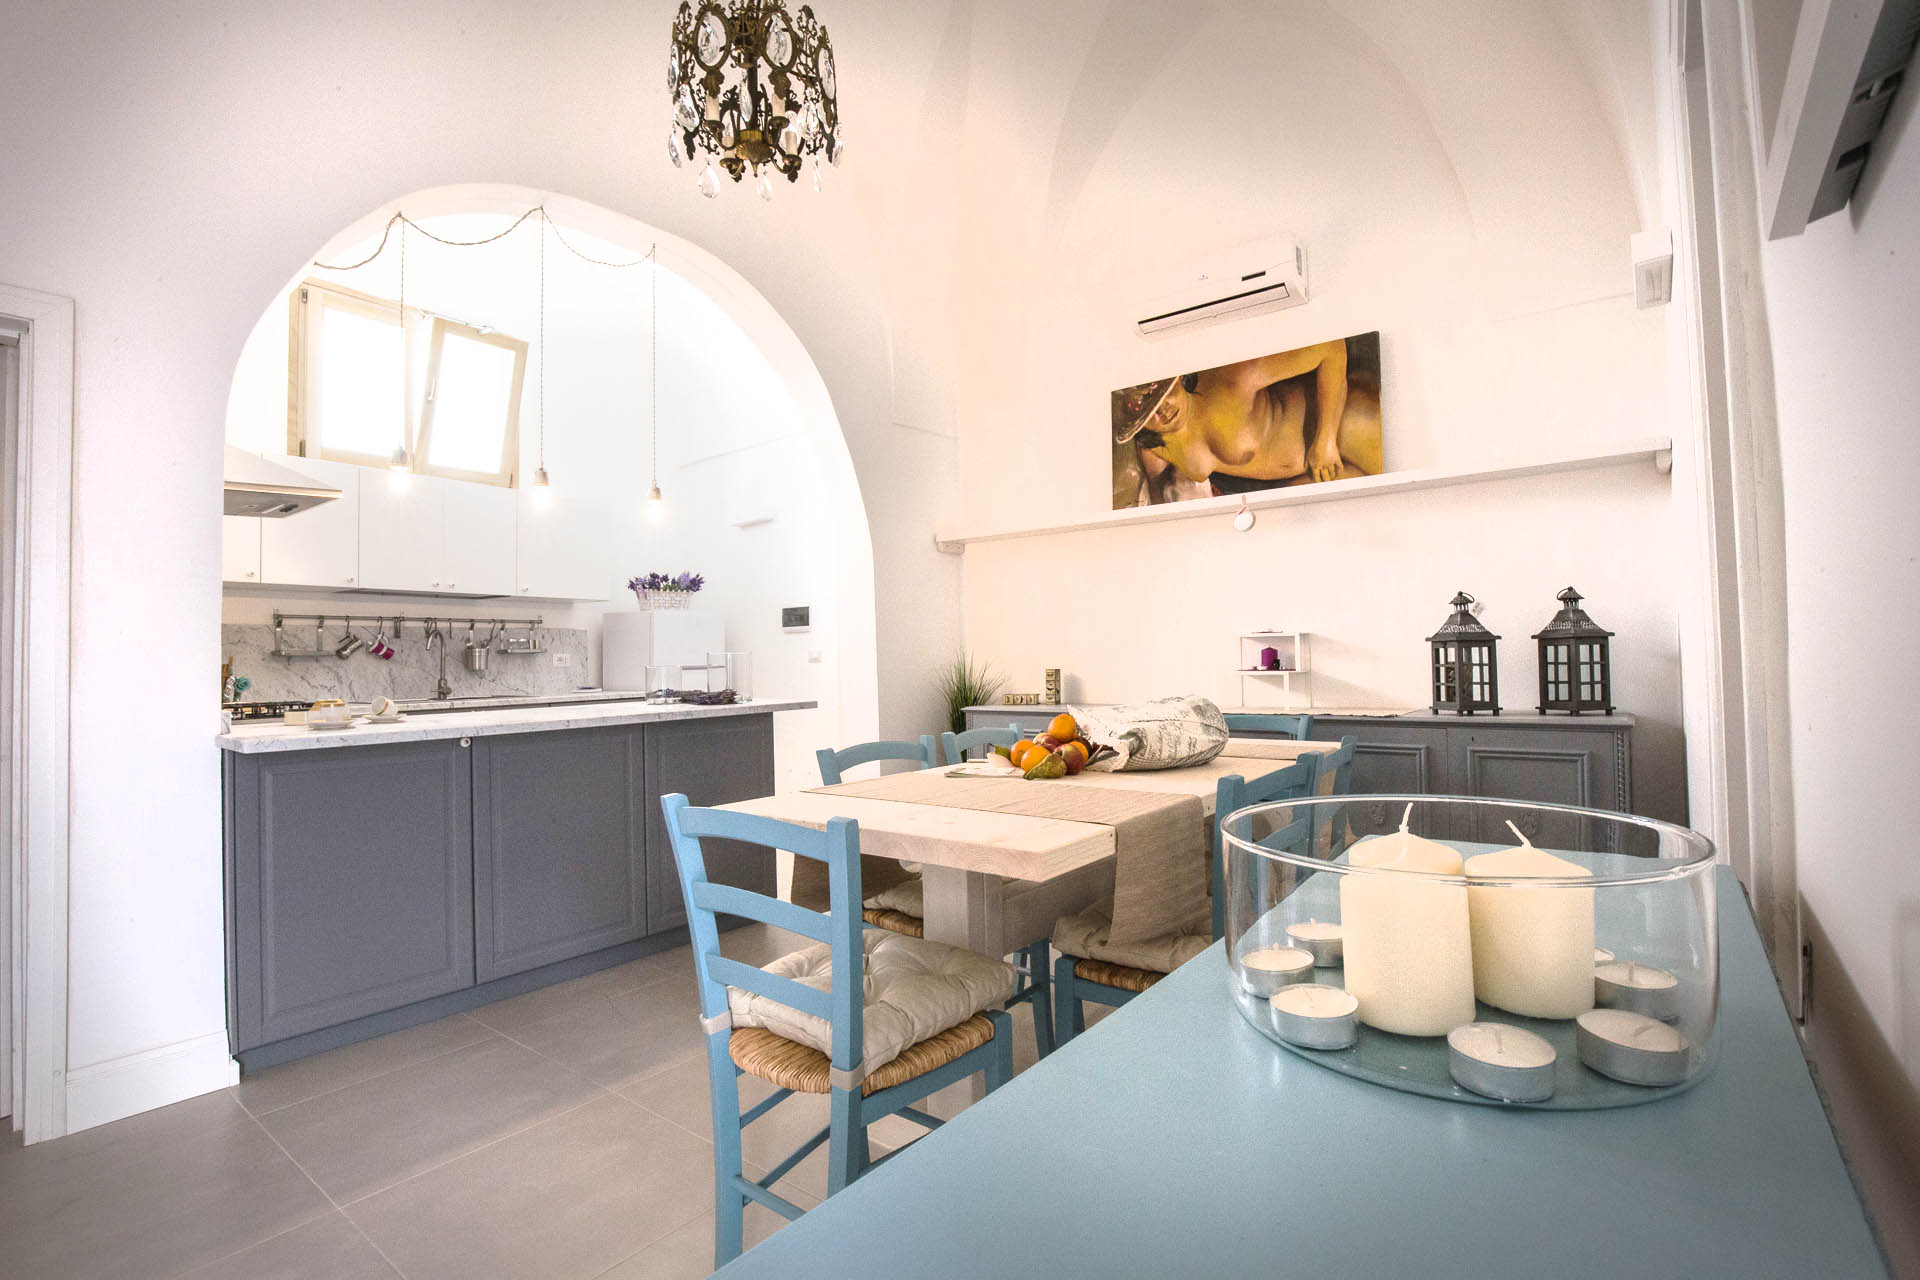 kitchen - ILBORGO-4224